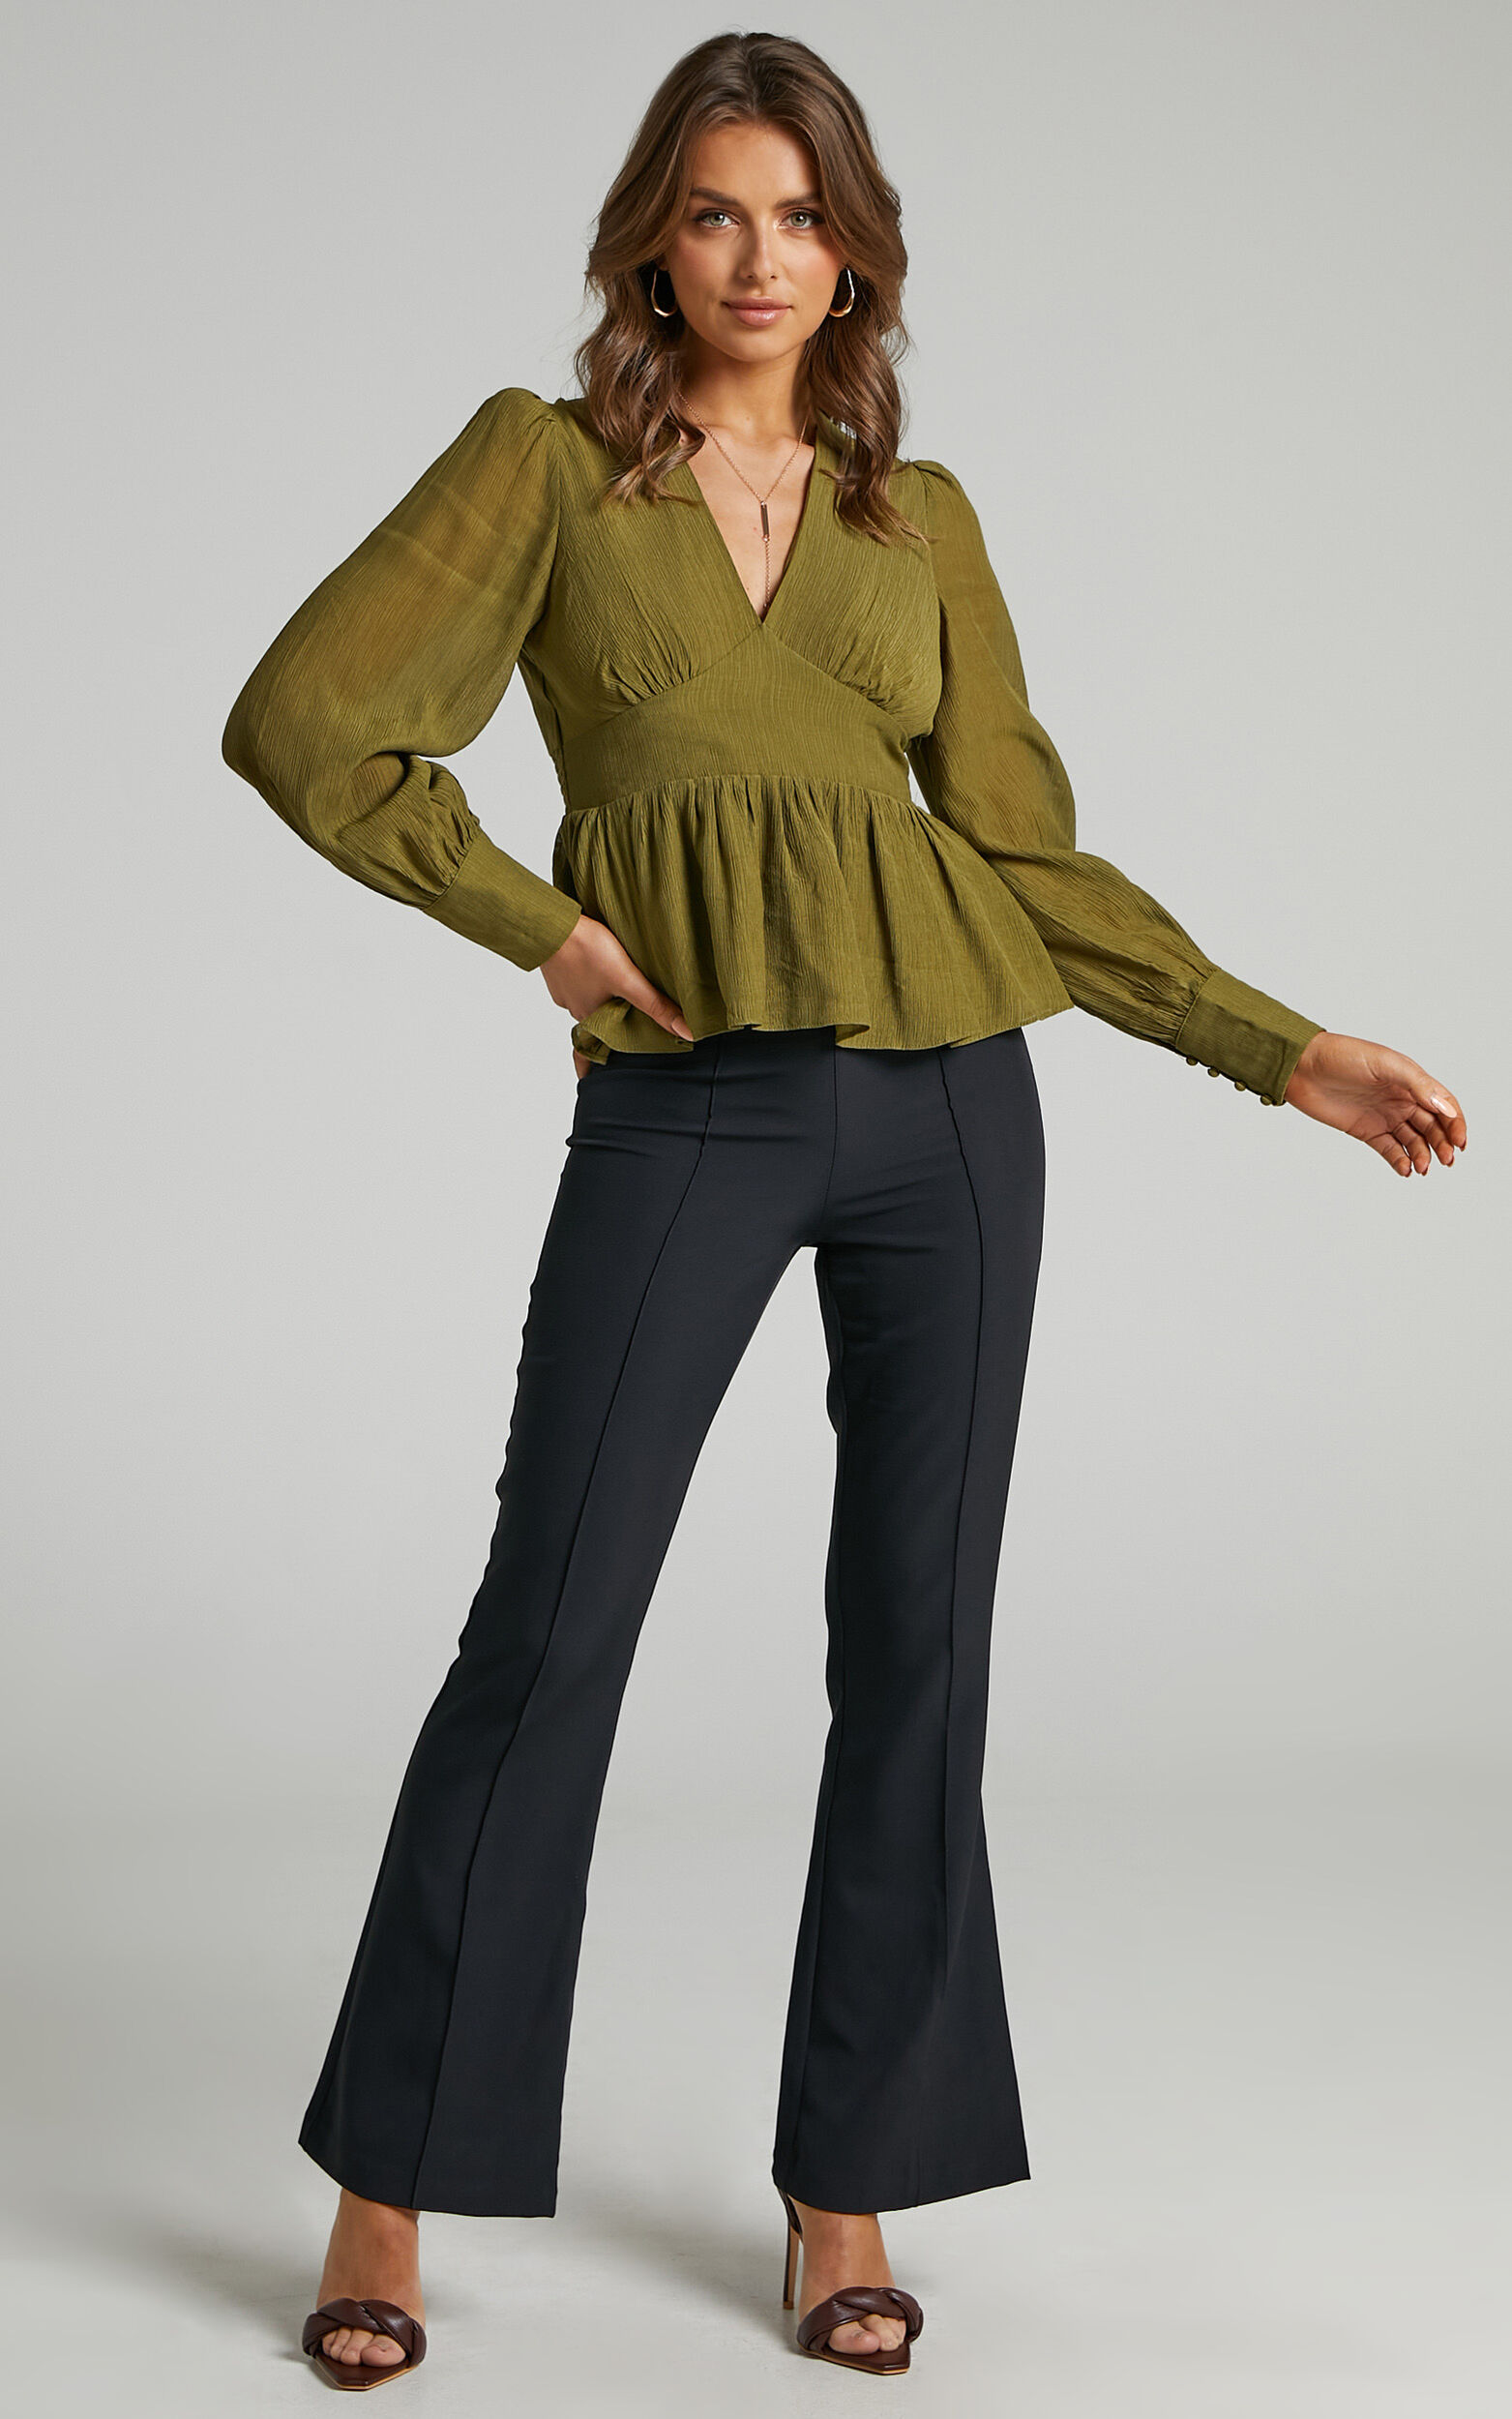 Shyla Balloon Sleeve Peplum Top in Green - 06, GRN1, super-hi-res image number null